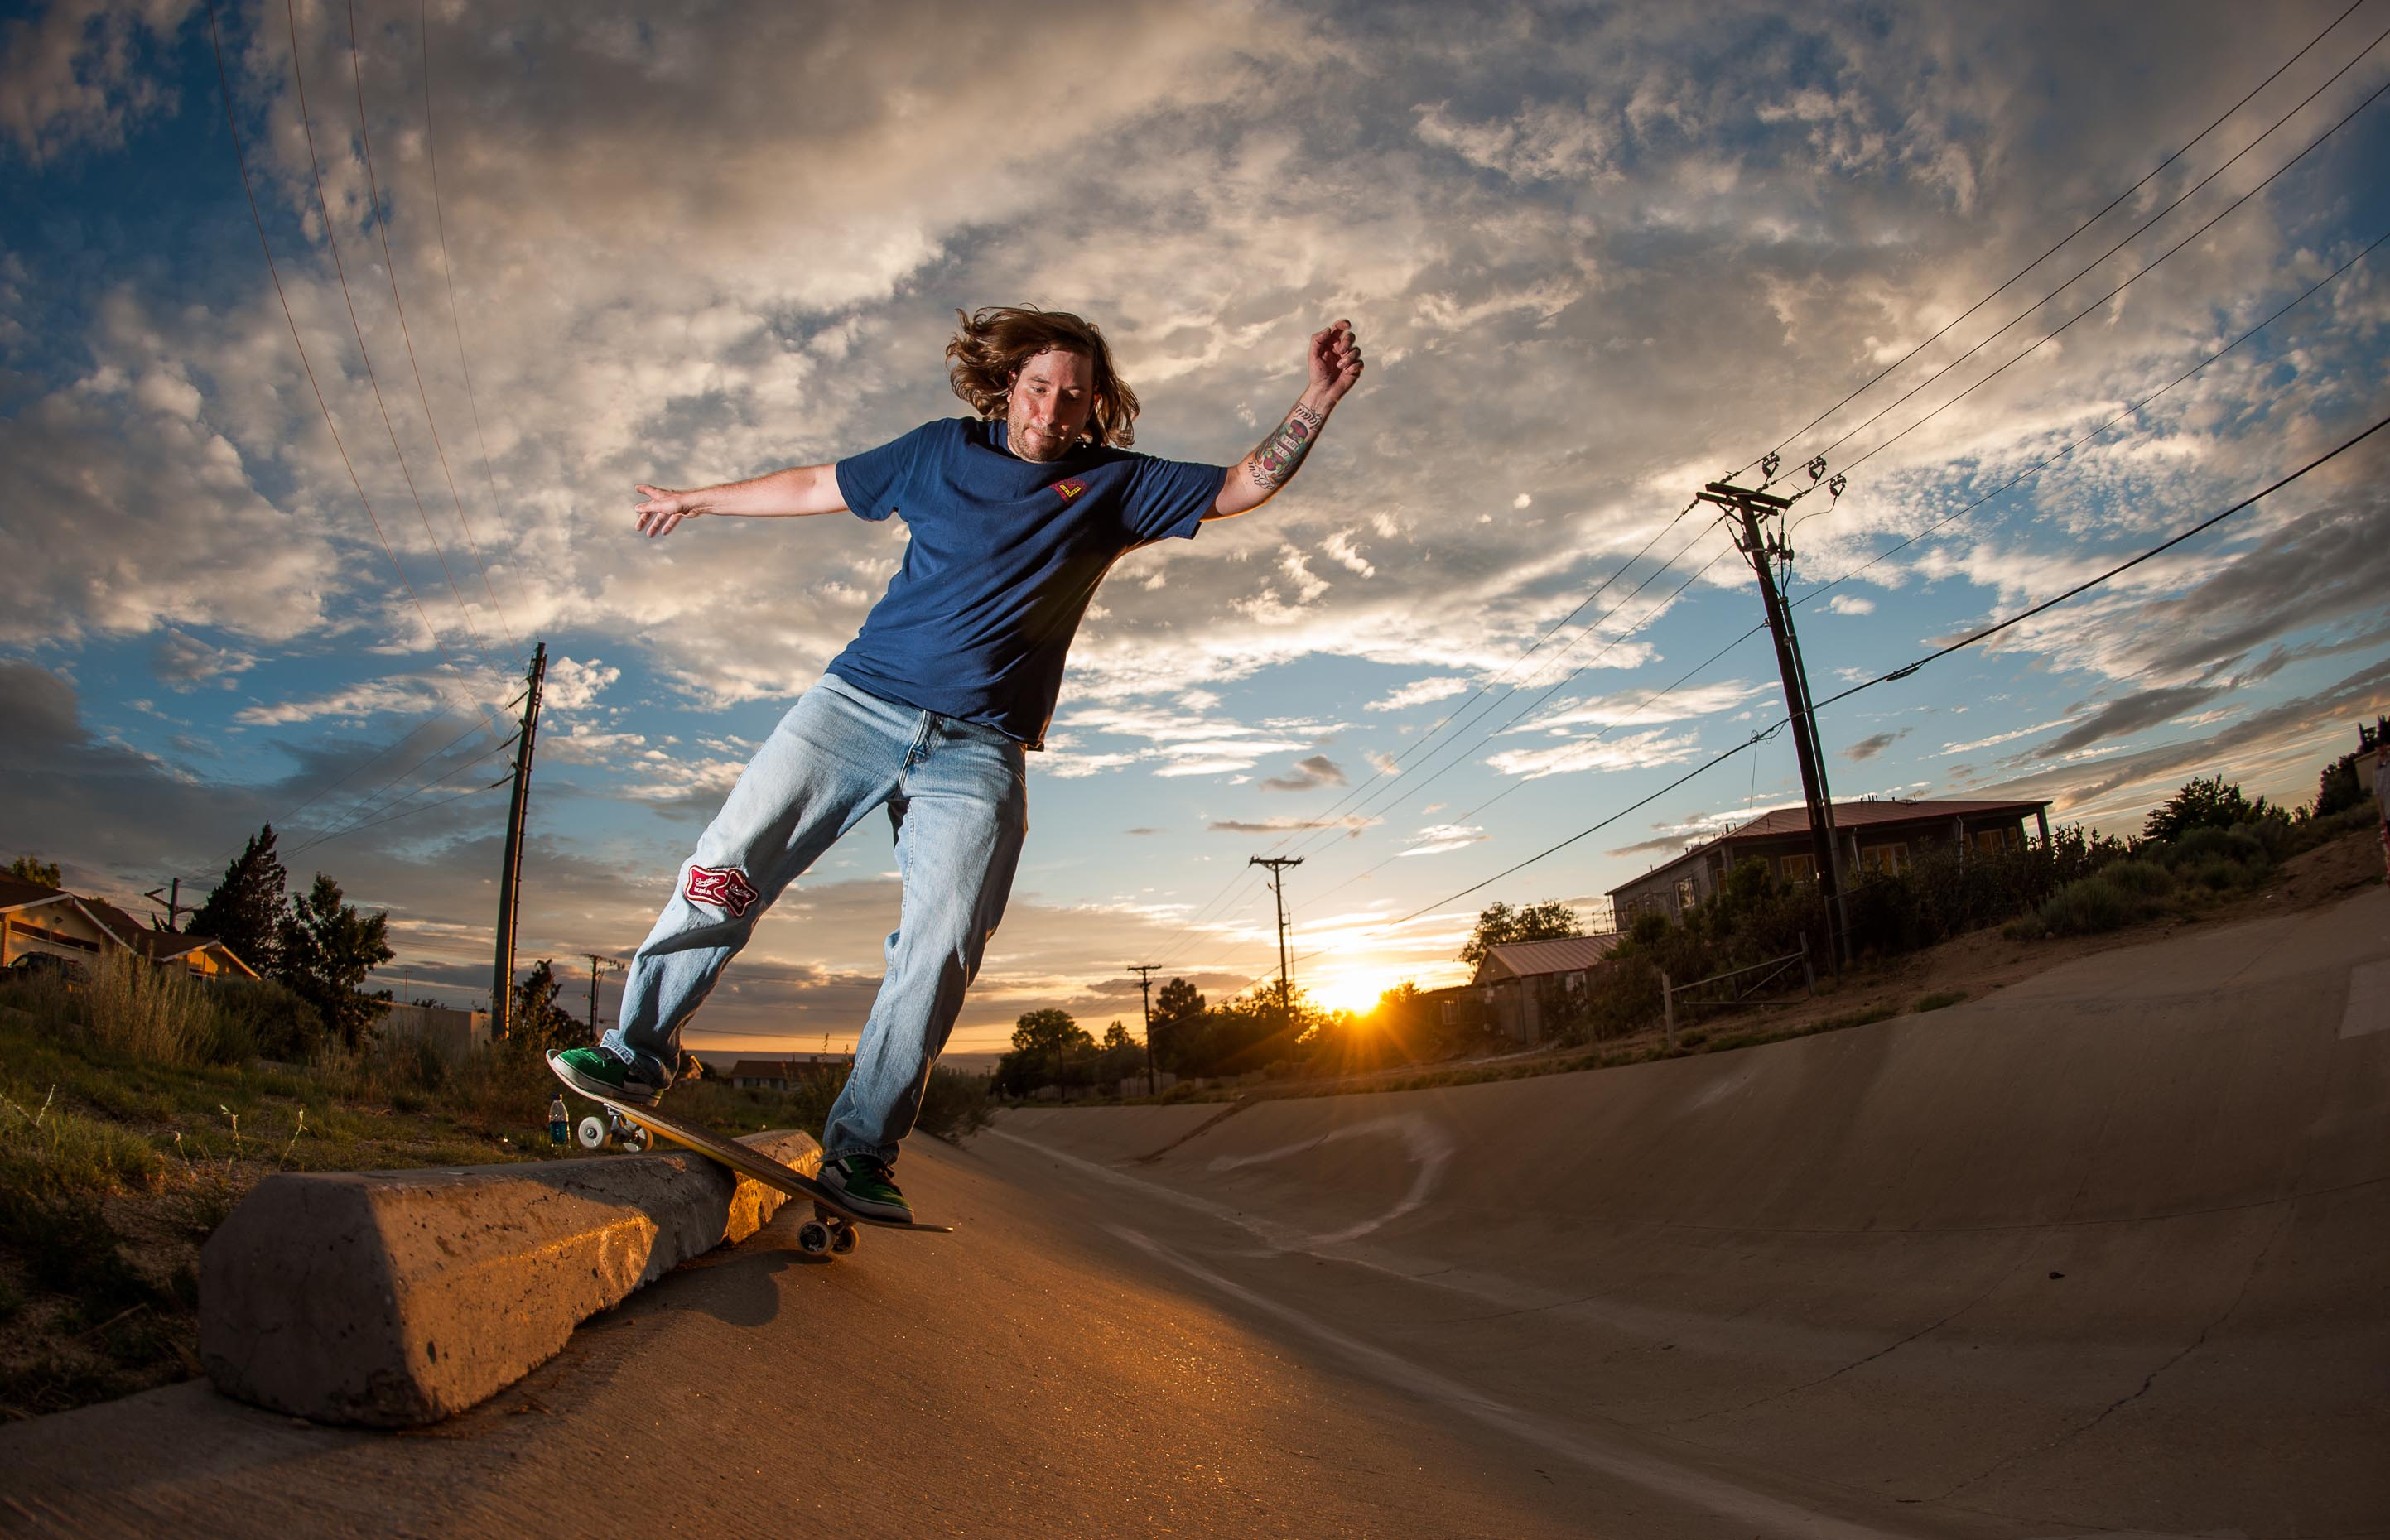 aaron-ingrao-skateboard-ditch-trip-alburquerque-chris-D-2